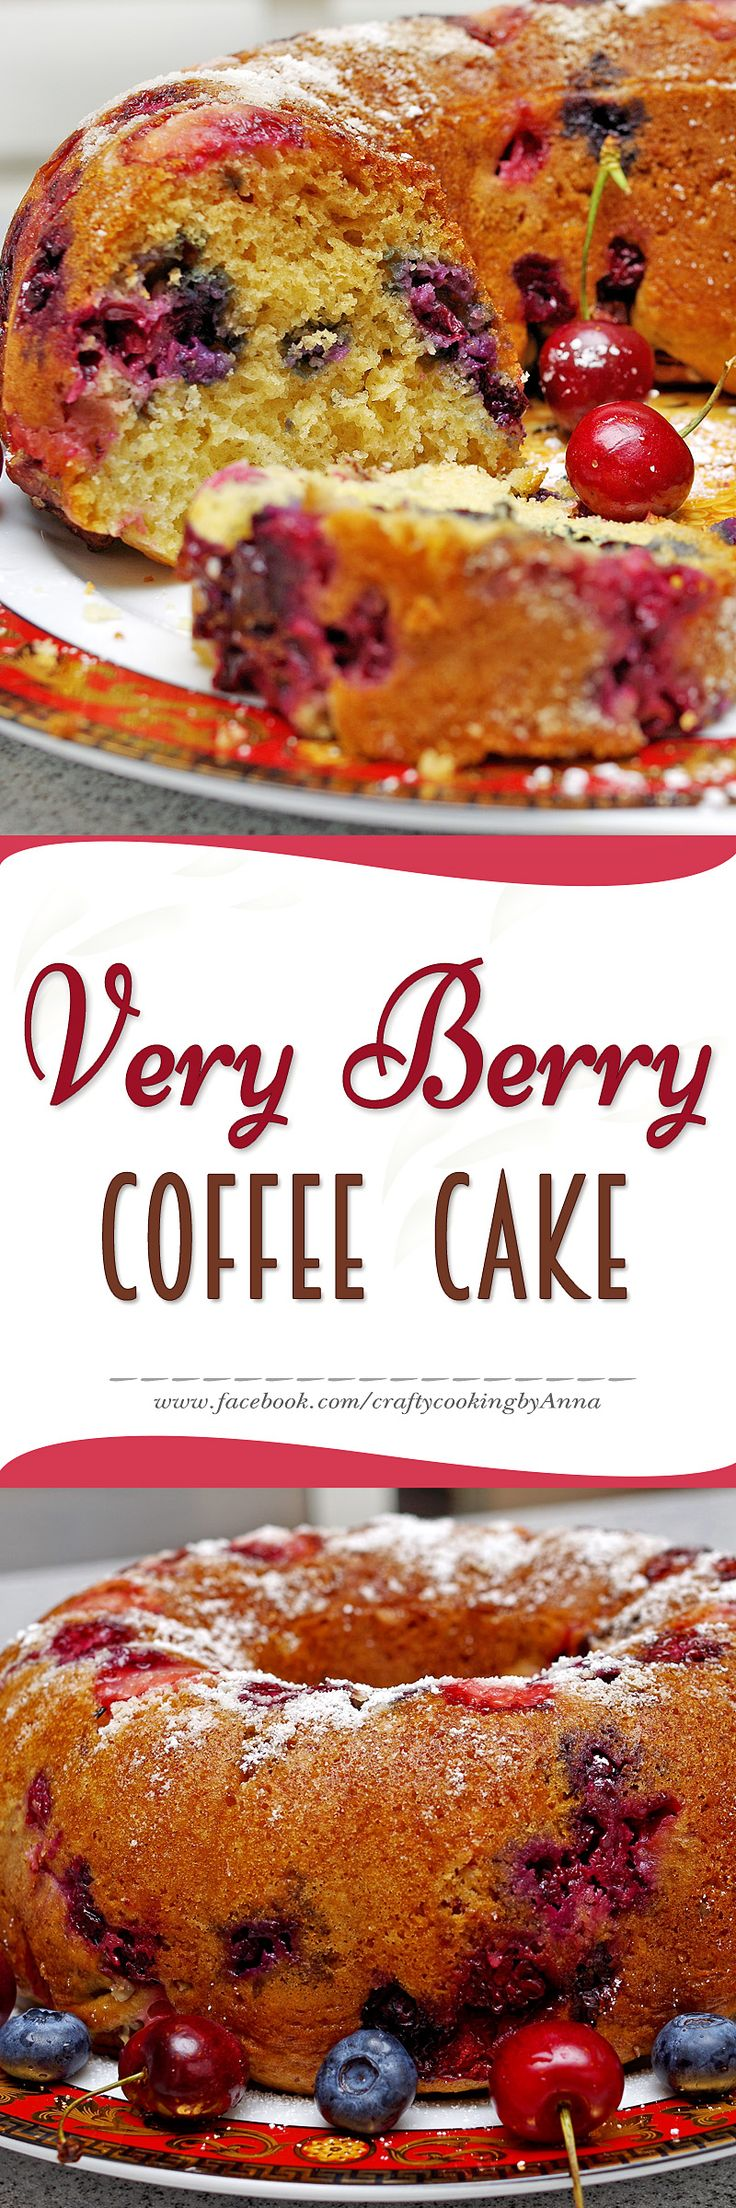 Very Berry Coffee Cake! #Easy #Delicious #Everyday #Beautiful  #Homecooking #Recipes #Dinner #Breakfast #Lunch #Kids #Foddie #Food #Fresh #Foodfollow #Foodporn #Low-Carb #Low-Cal #Yum  #foodstagram #fitchef #yummy #foodlover #tasty #foodheaven  #Nom #Nomnom #Hungry #Follow #Me #CraftyCookingByAnna If you like my recipes, please Follow Me - http://www.pinterest.com/annavil/  and  https://instagram.com/craftycookingbyanna/ and Join Me - https://www.facebook.com/craftycookingbyAnna  Thank you!